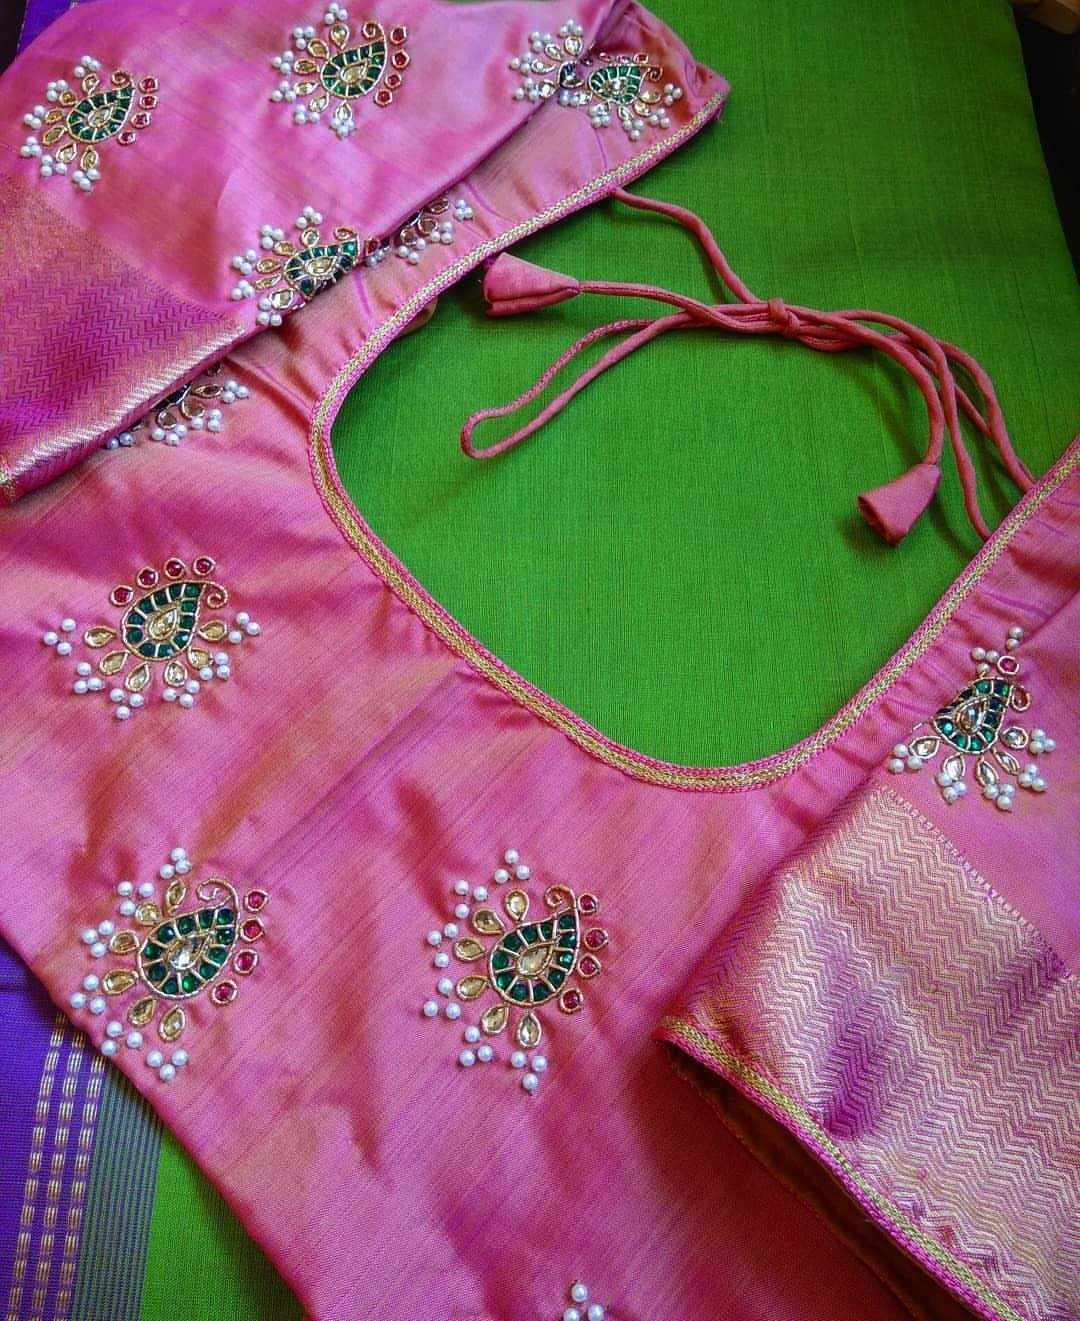 Pin By Sowmya Manikandan On Blouse Embroidered Blouse Designs Blouse Work Designs Fashion Blouse Design,Simple Home Furniture Design Hall